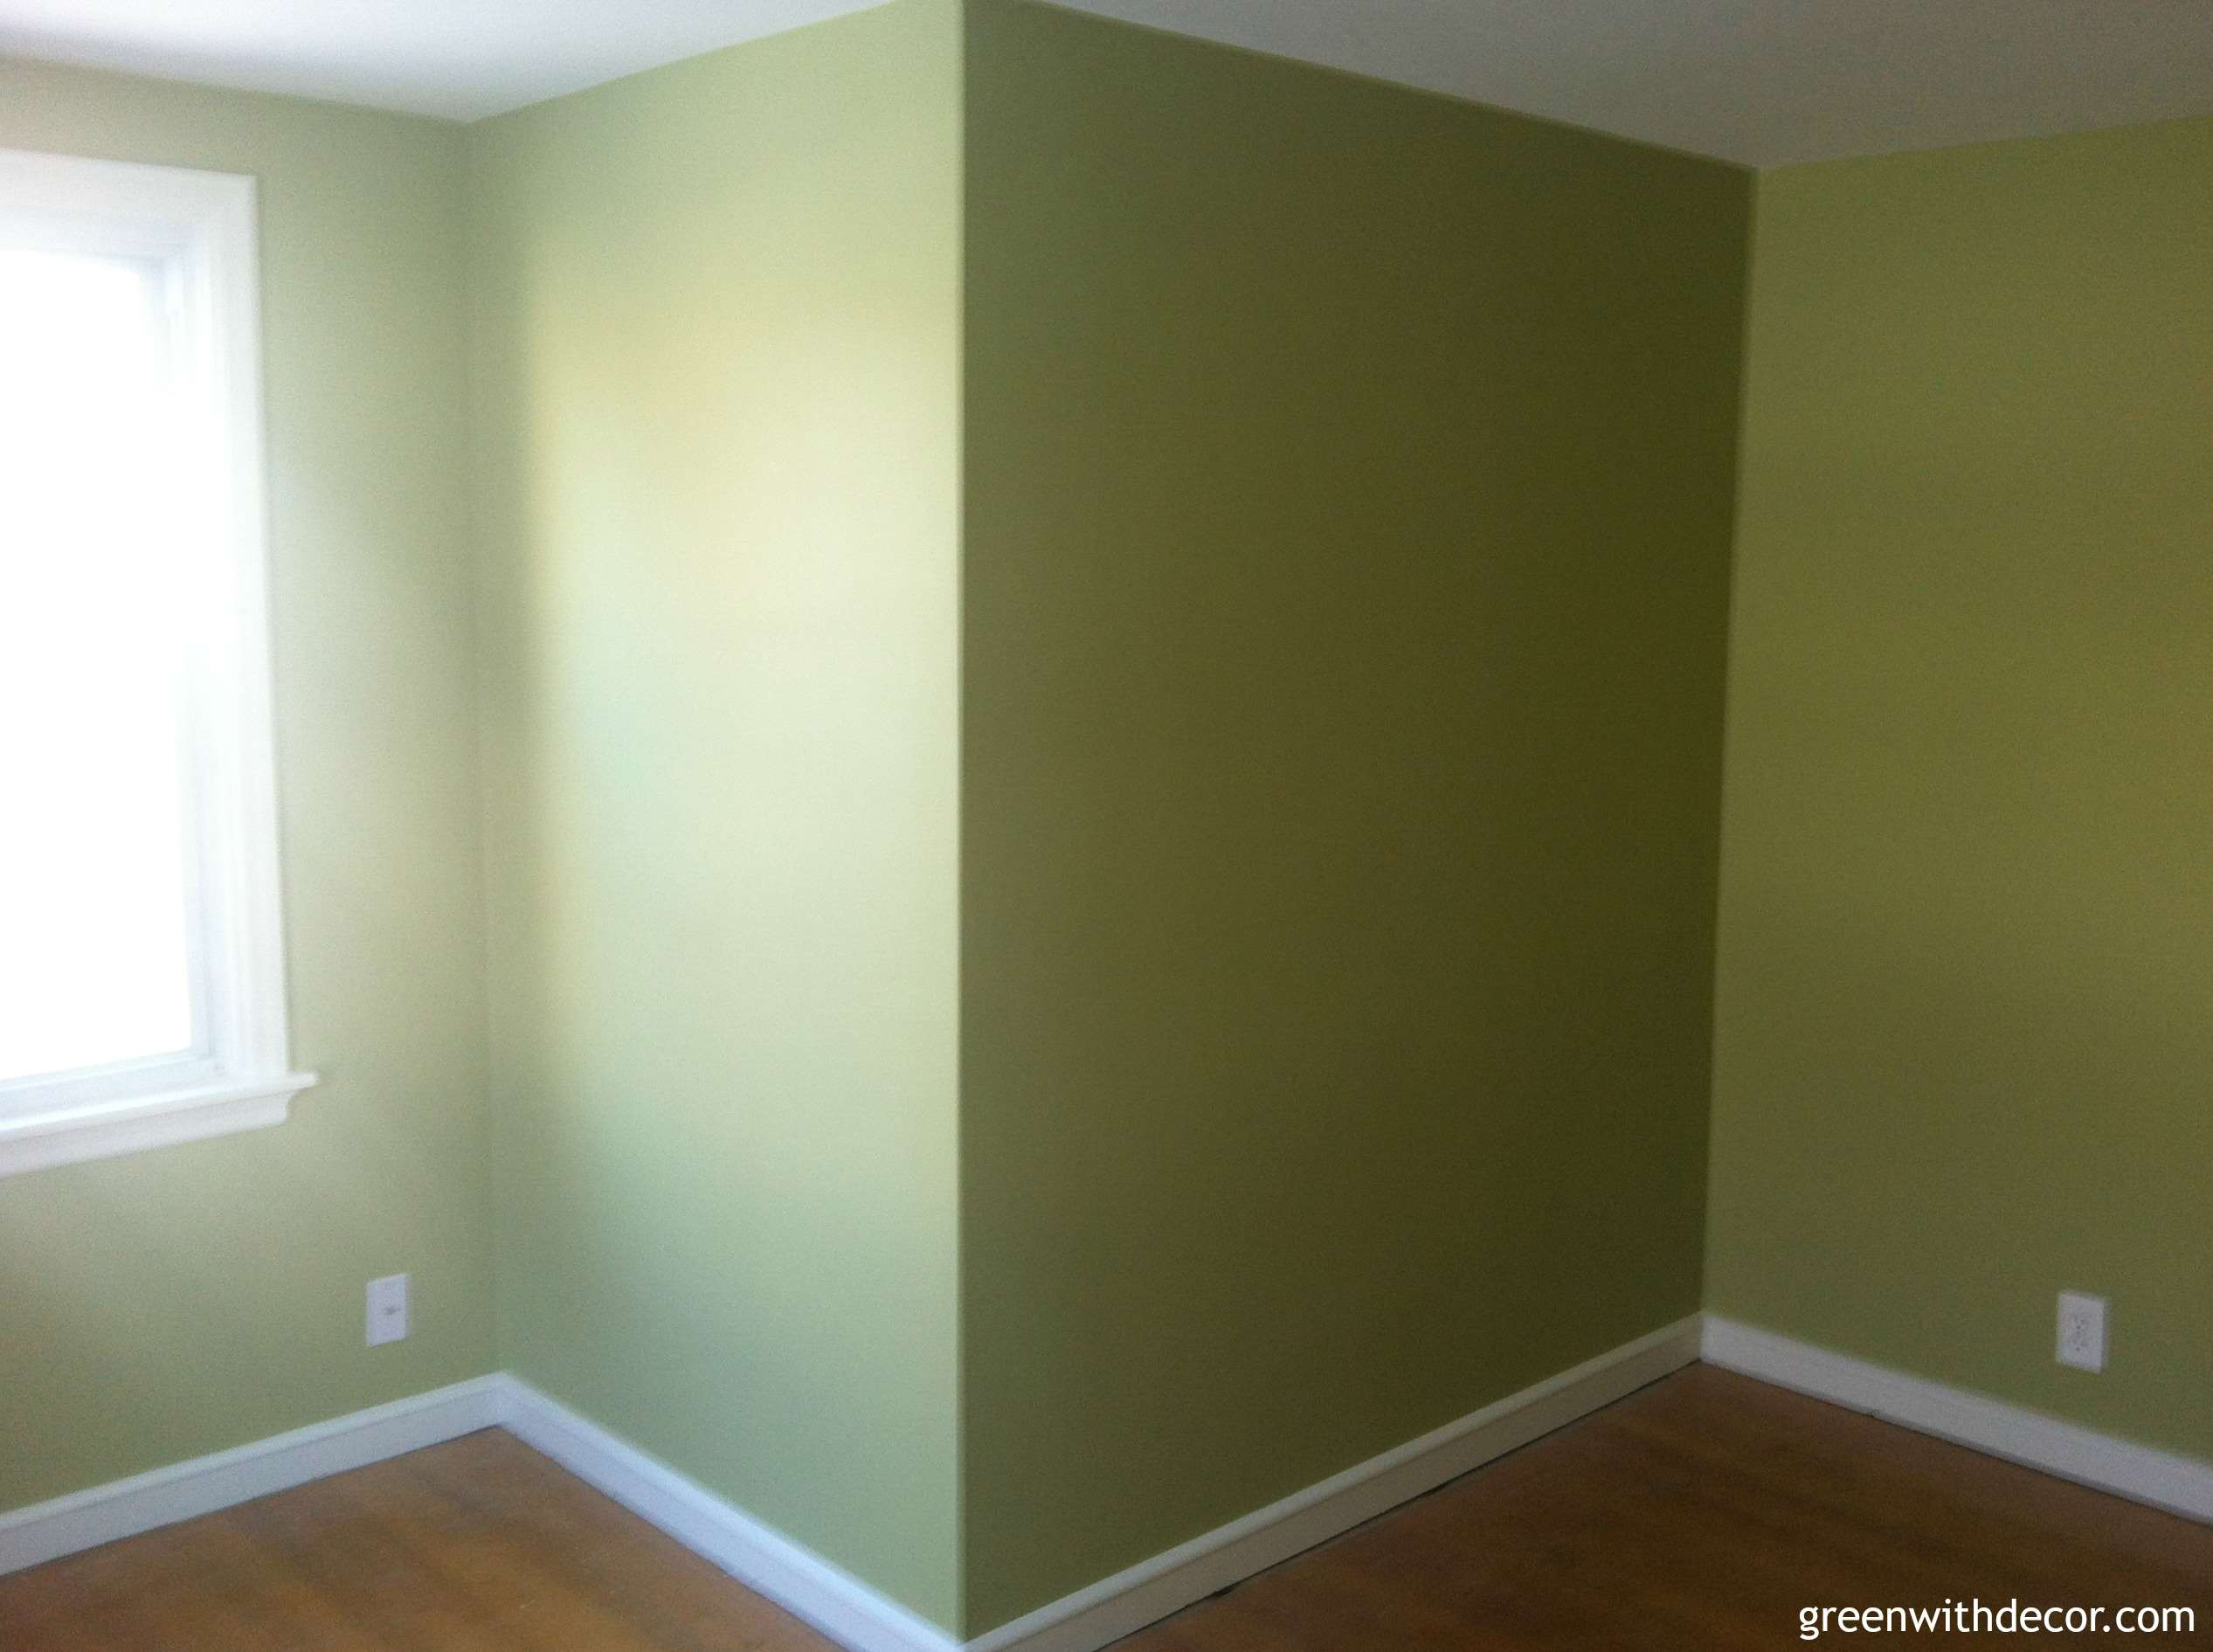 Green With Decor Second Floor Paint Color Reveal